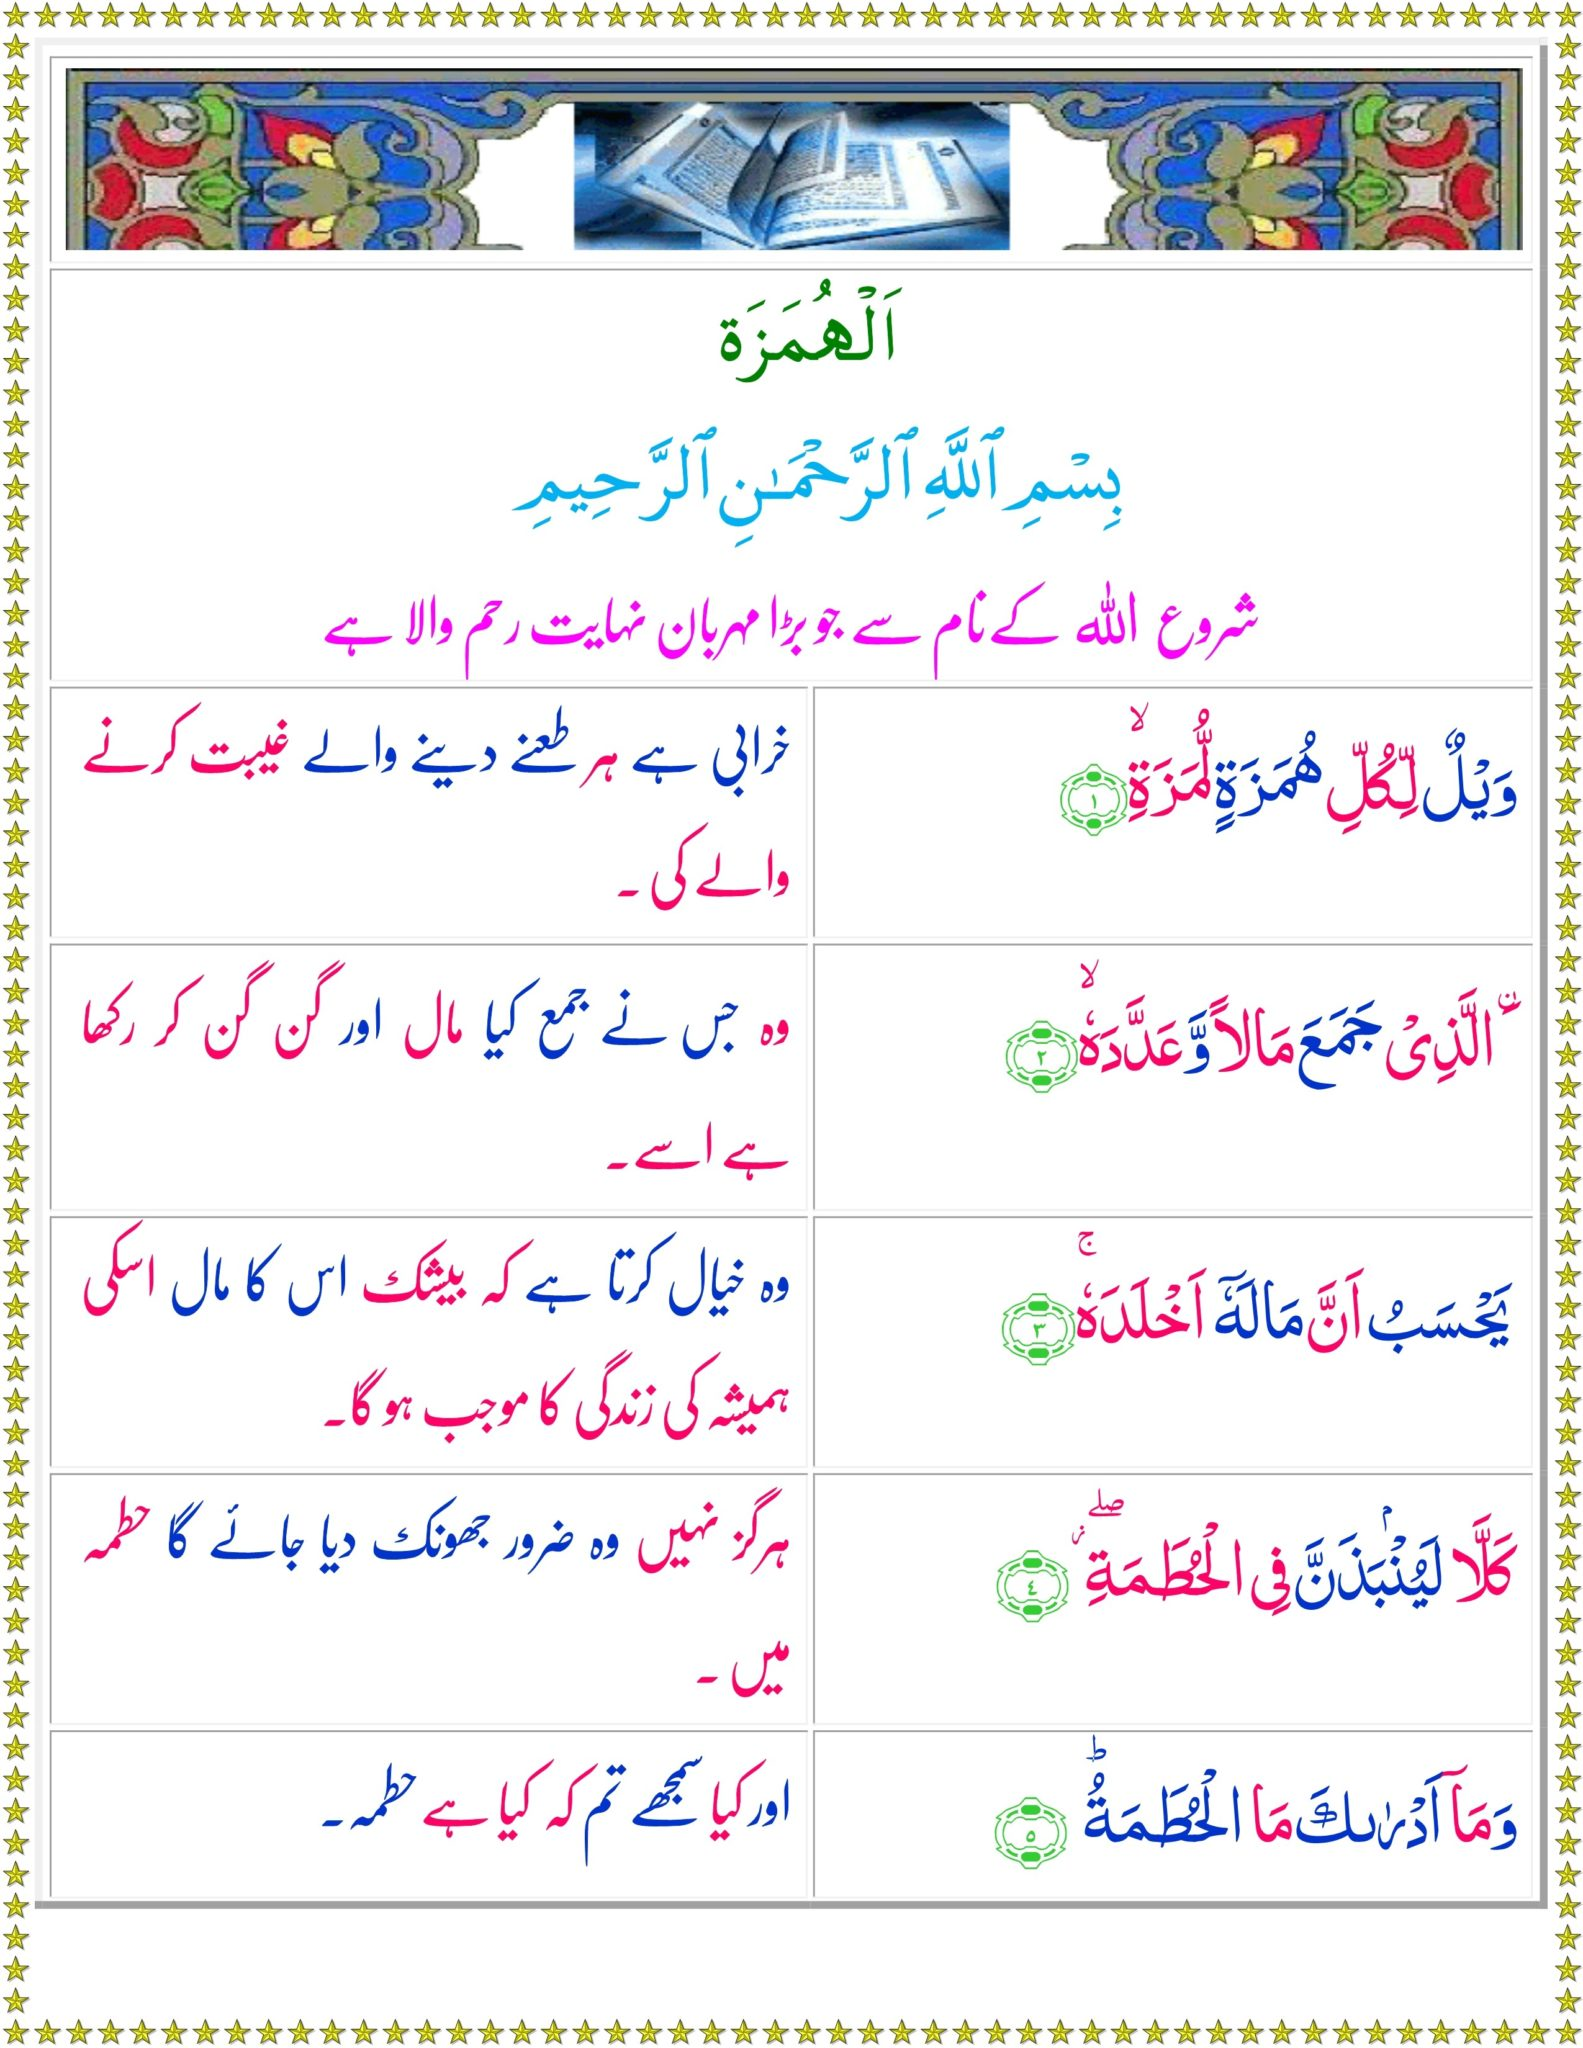 Surah Humazah translation in Urdu, Hindi